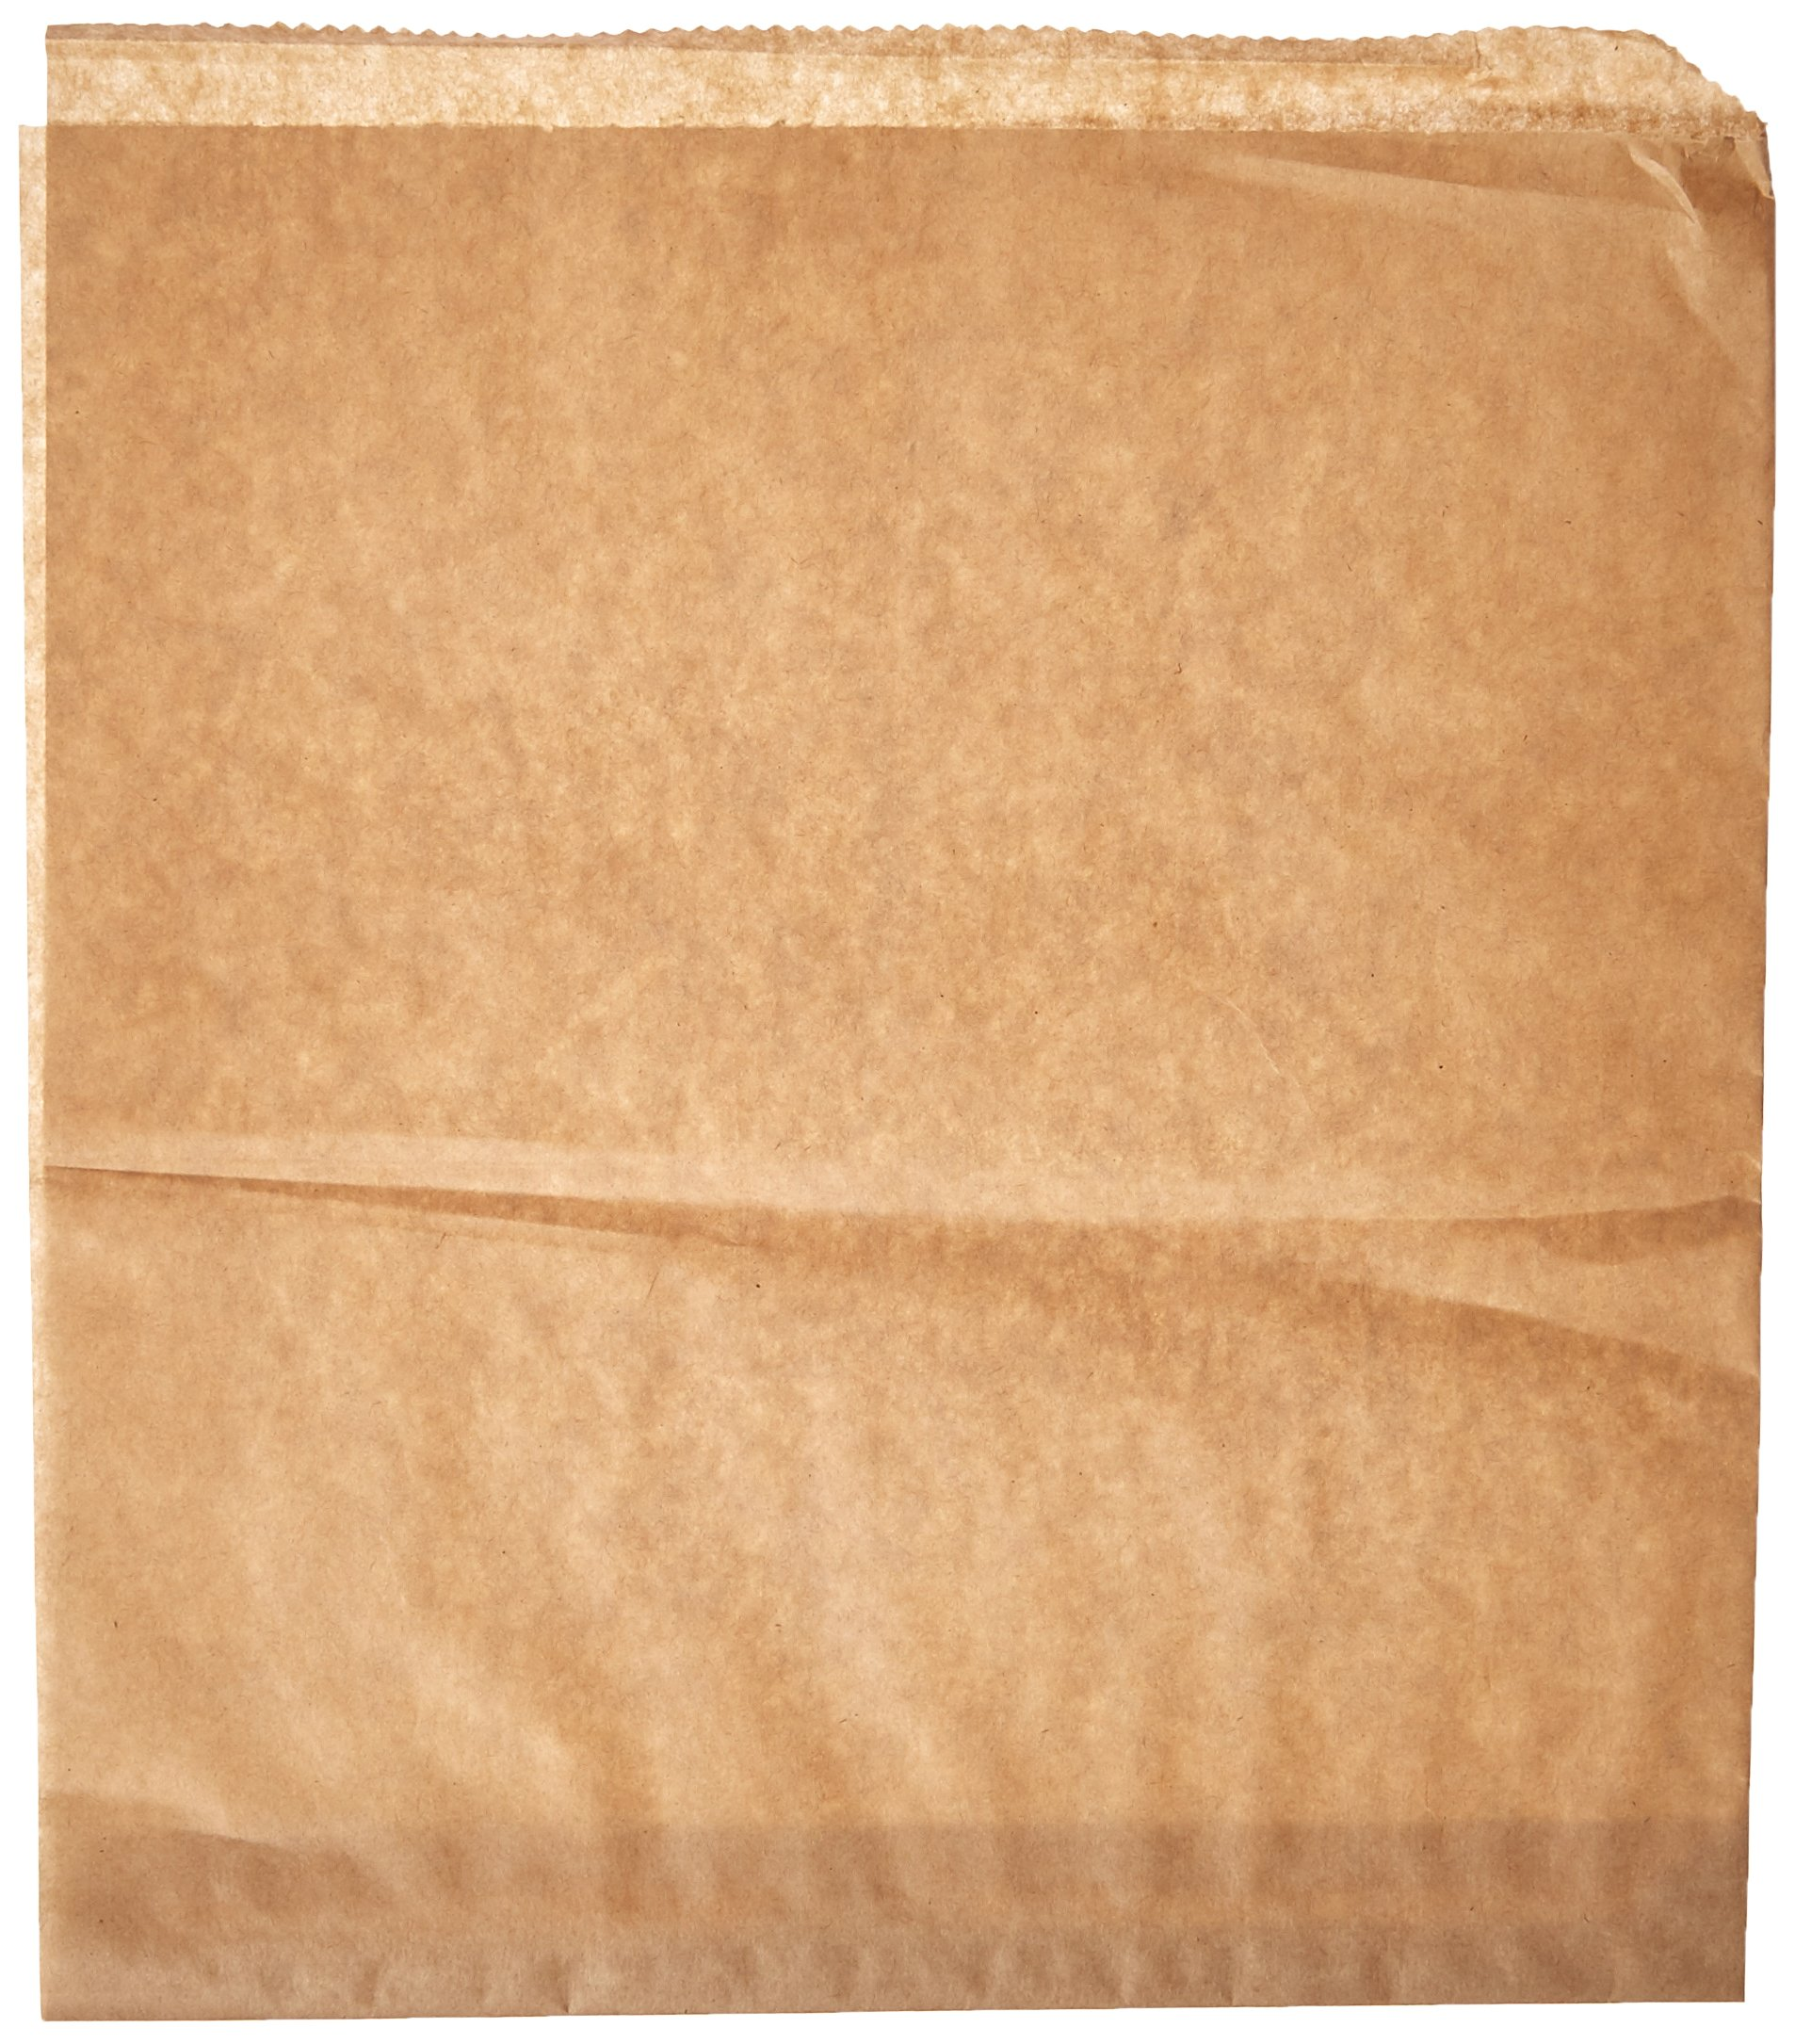 Bagcraft Papercon 300101 EcoCraft Paper Grease Resistant Large Dubl Open Bag, 10'' Length x 9'' Width, Natural (Case of 1000)